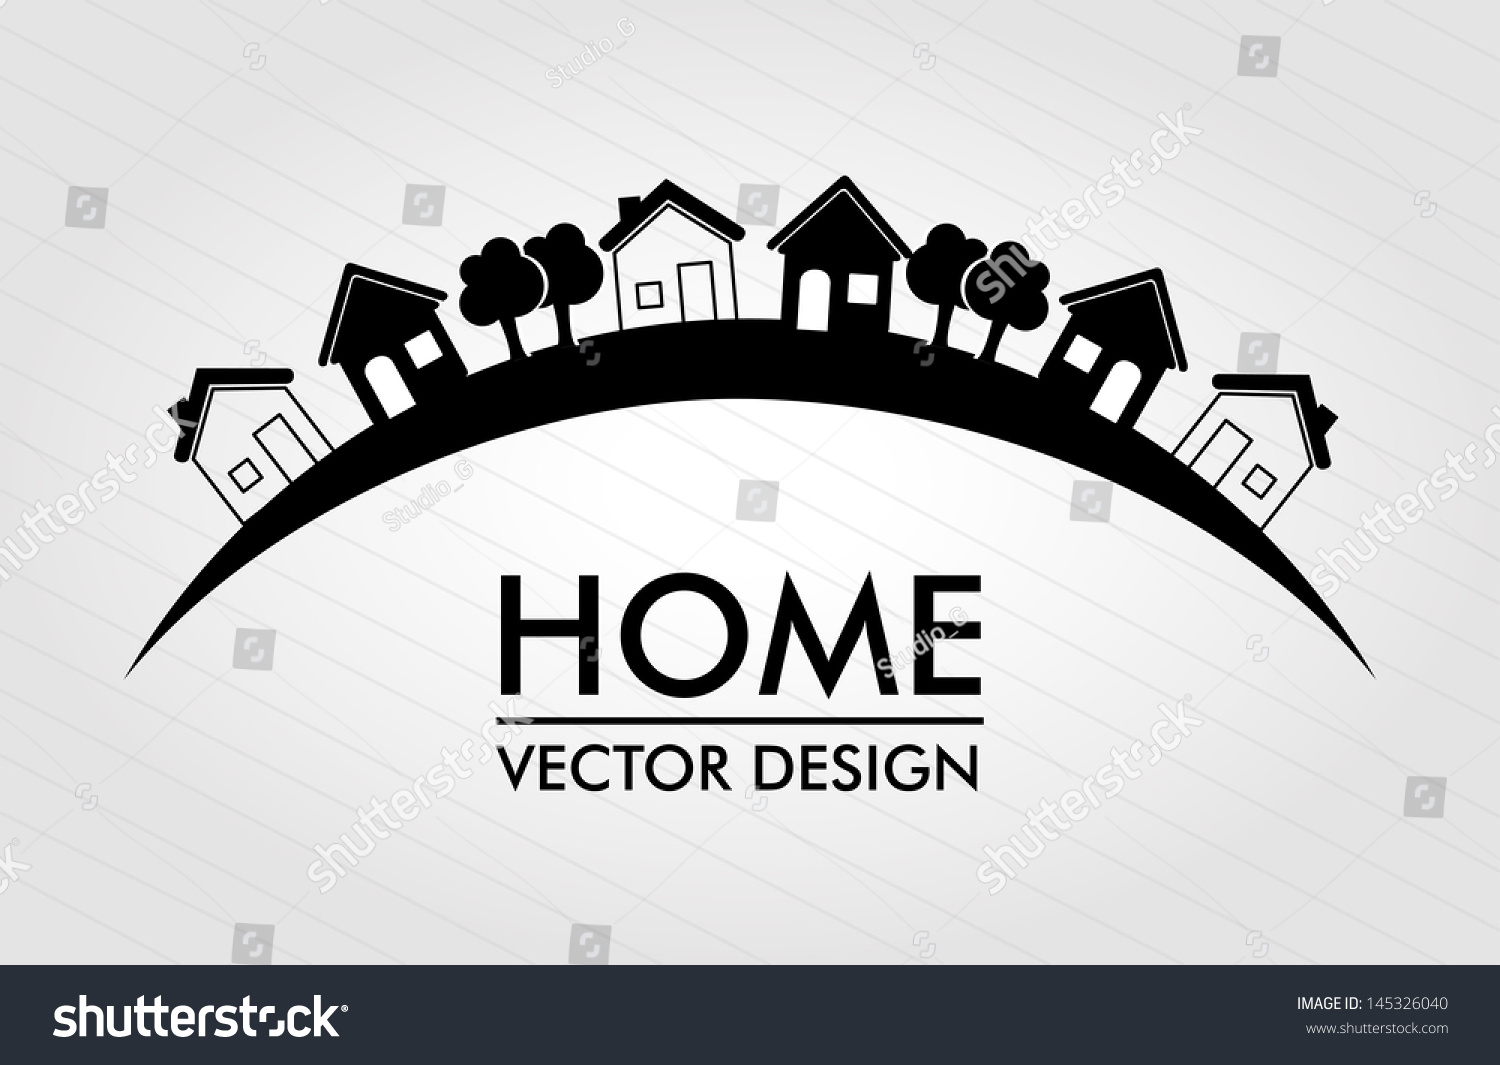 Home Design Over Lines Background Vector Stock Vector 145326040 ...